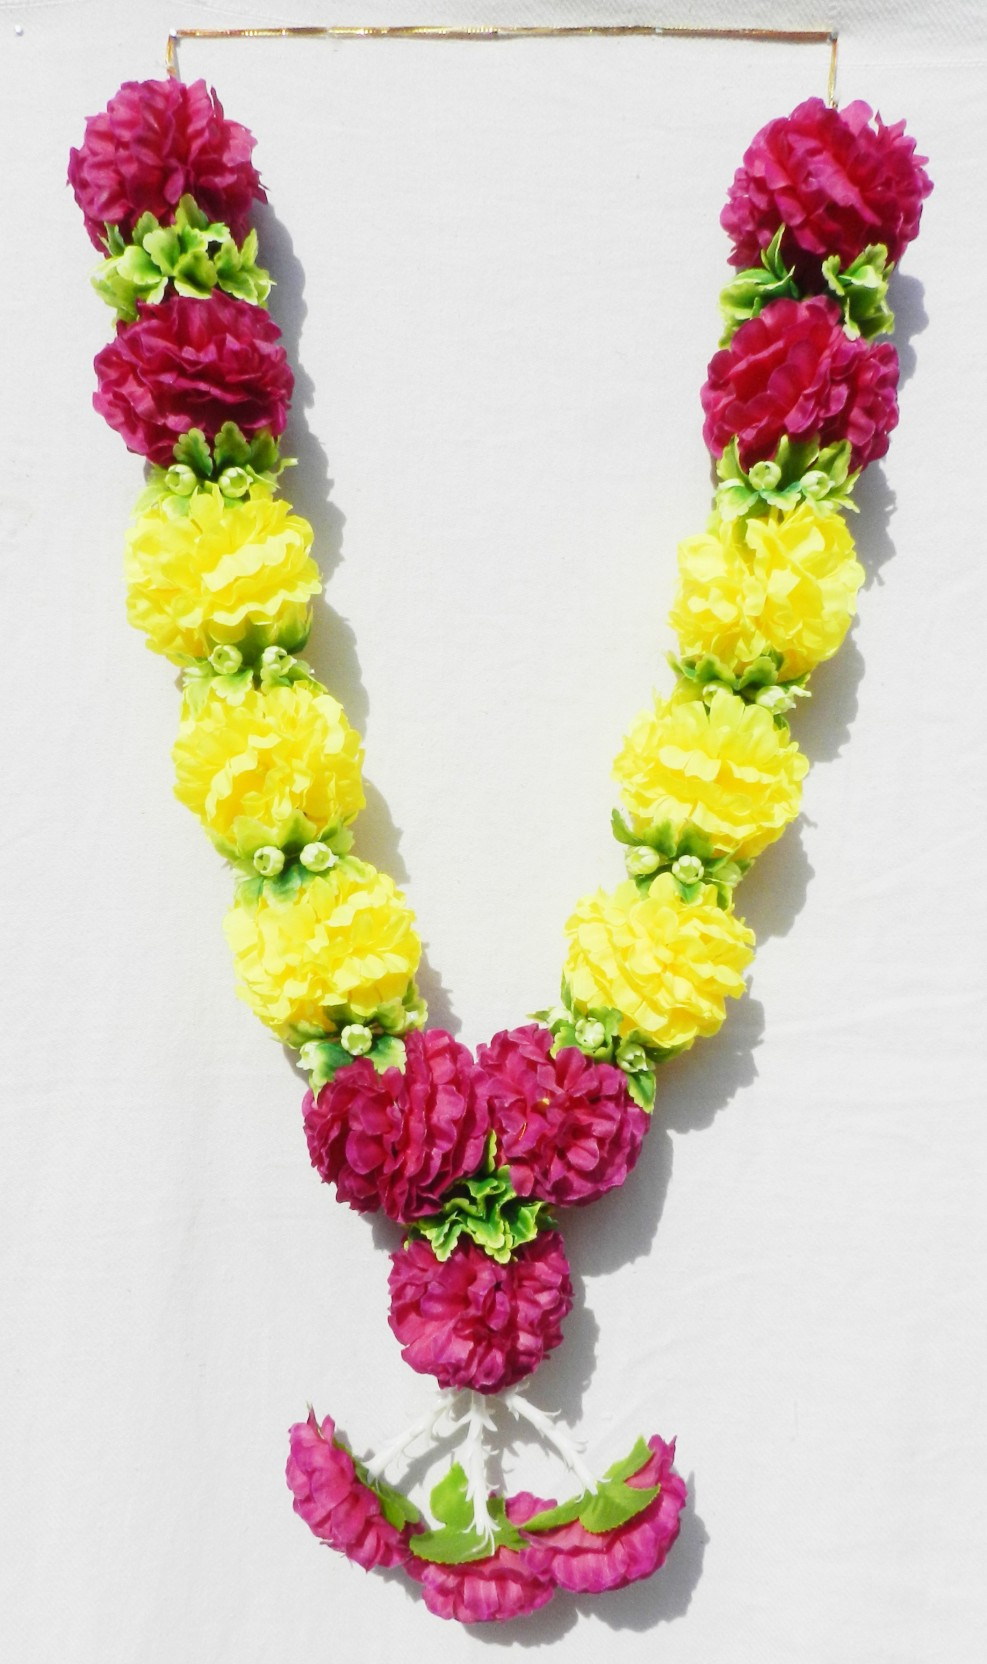 Myeshopes artificial yello purple daisy garland for durga puja and add to cart izmirmasajfo